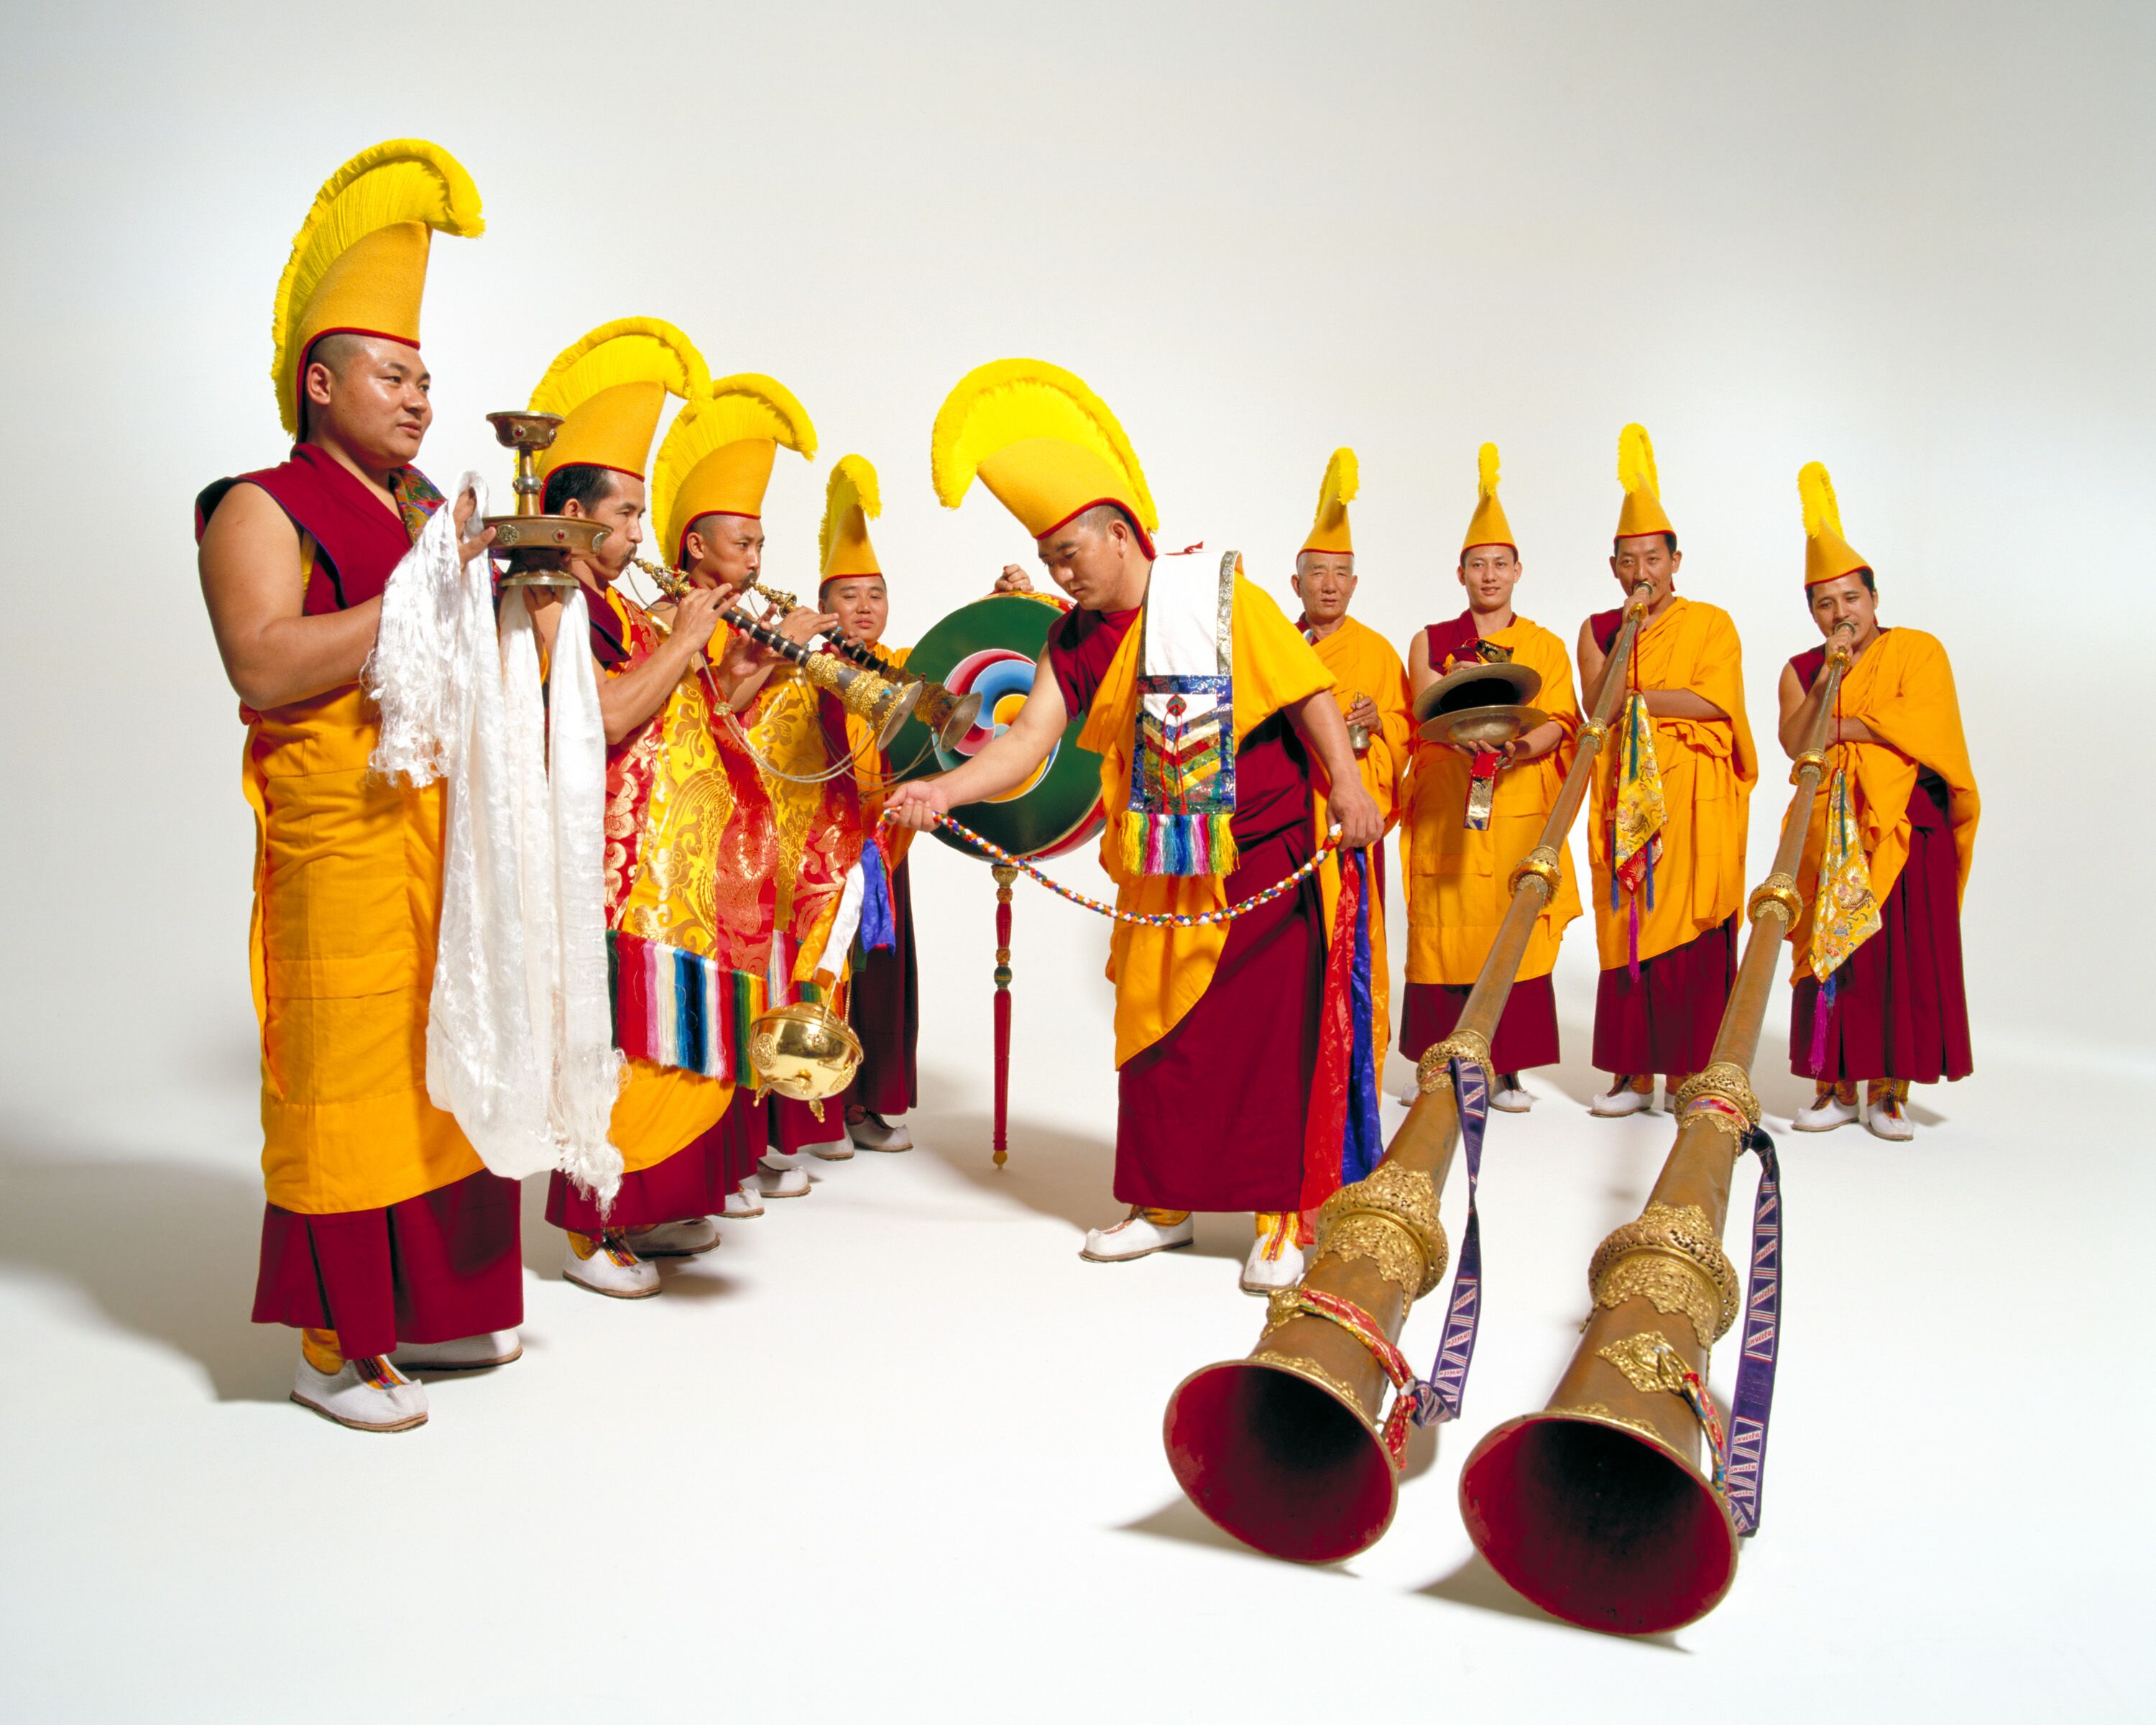 The Mystical Arts of Tibet. Photo courtesy of Early Music Now.